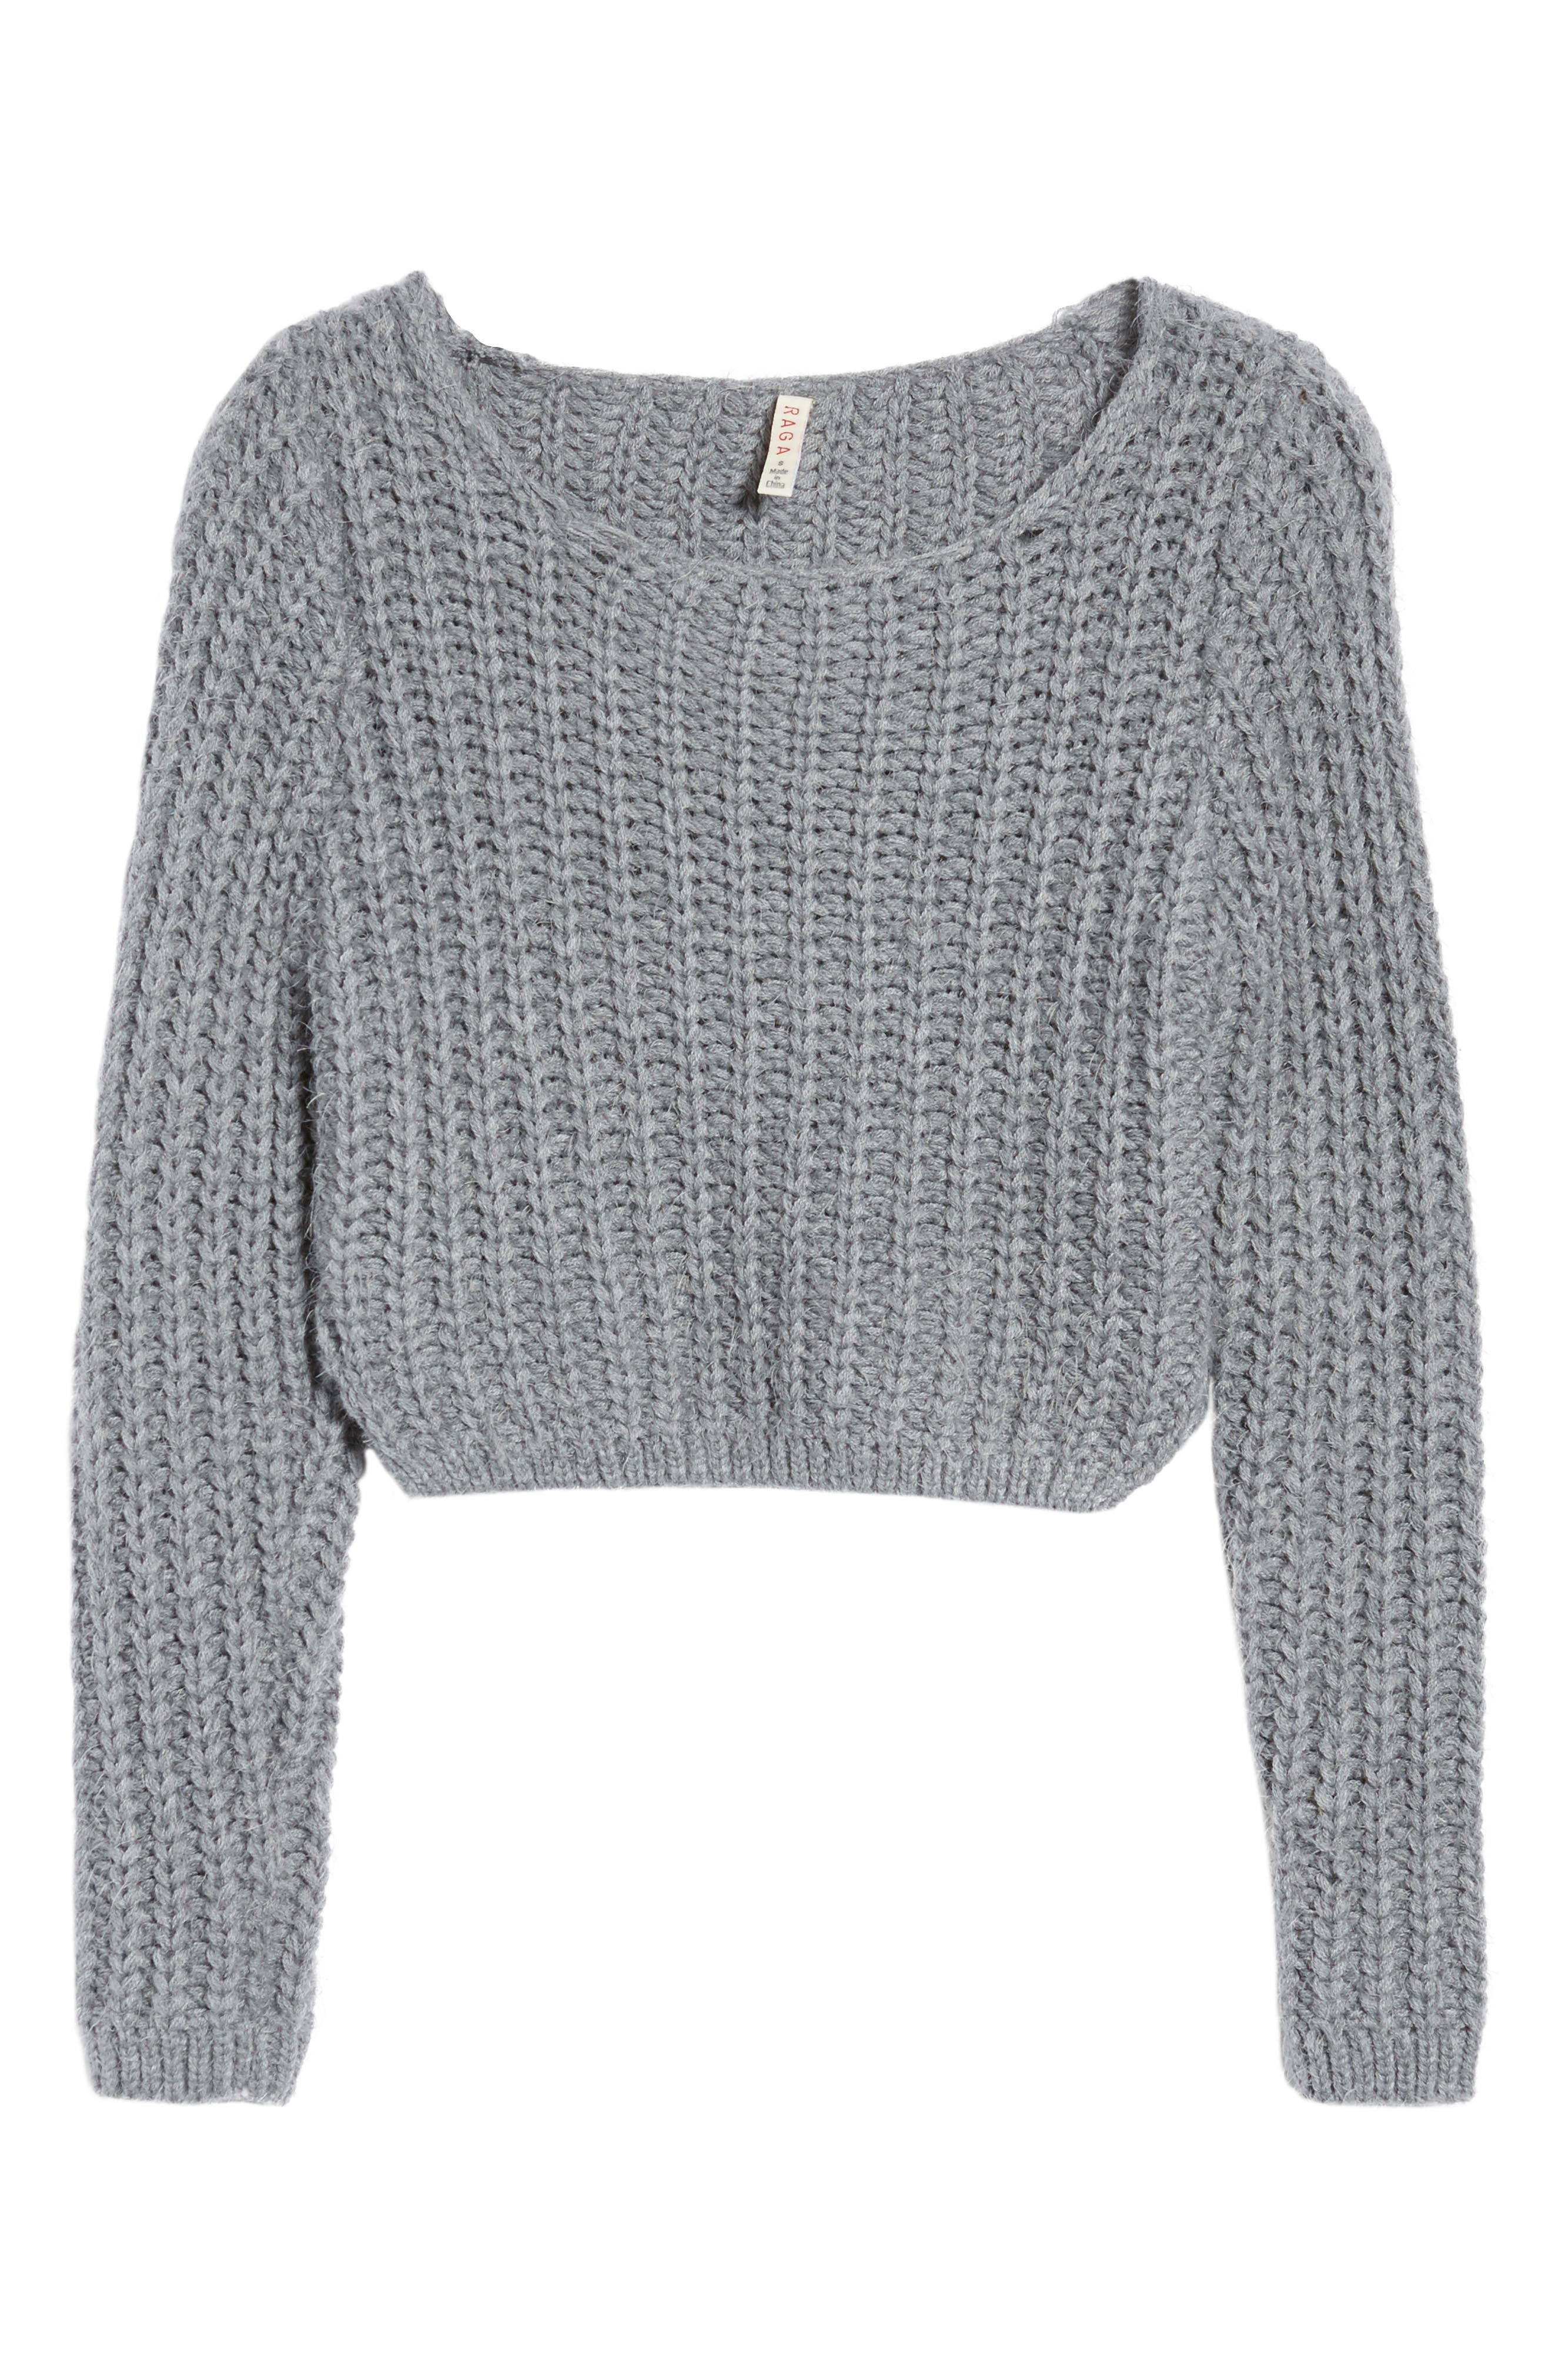 Bethany Crop Sweater,                             Alternate thumbnail 6, color,                             020